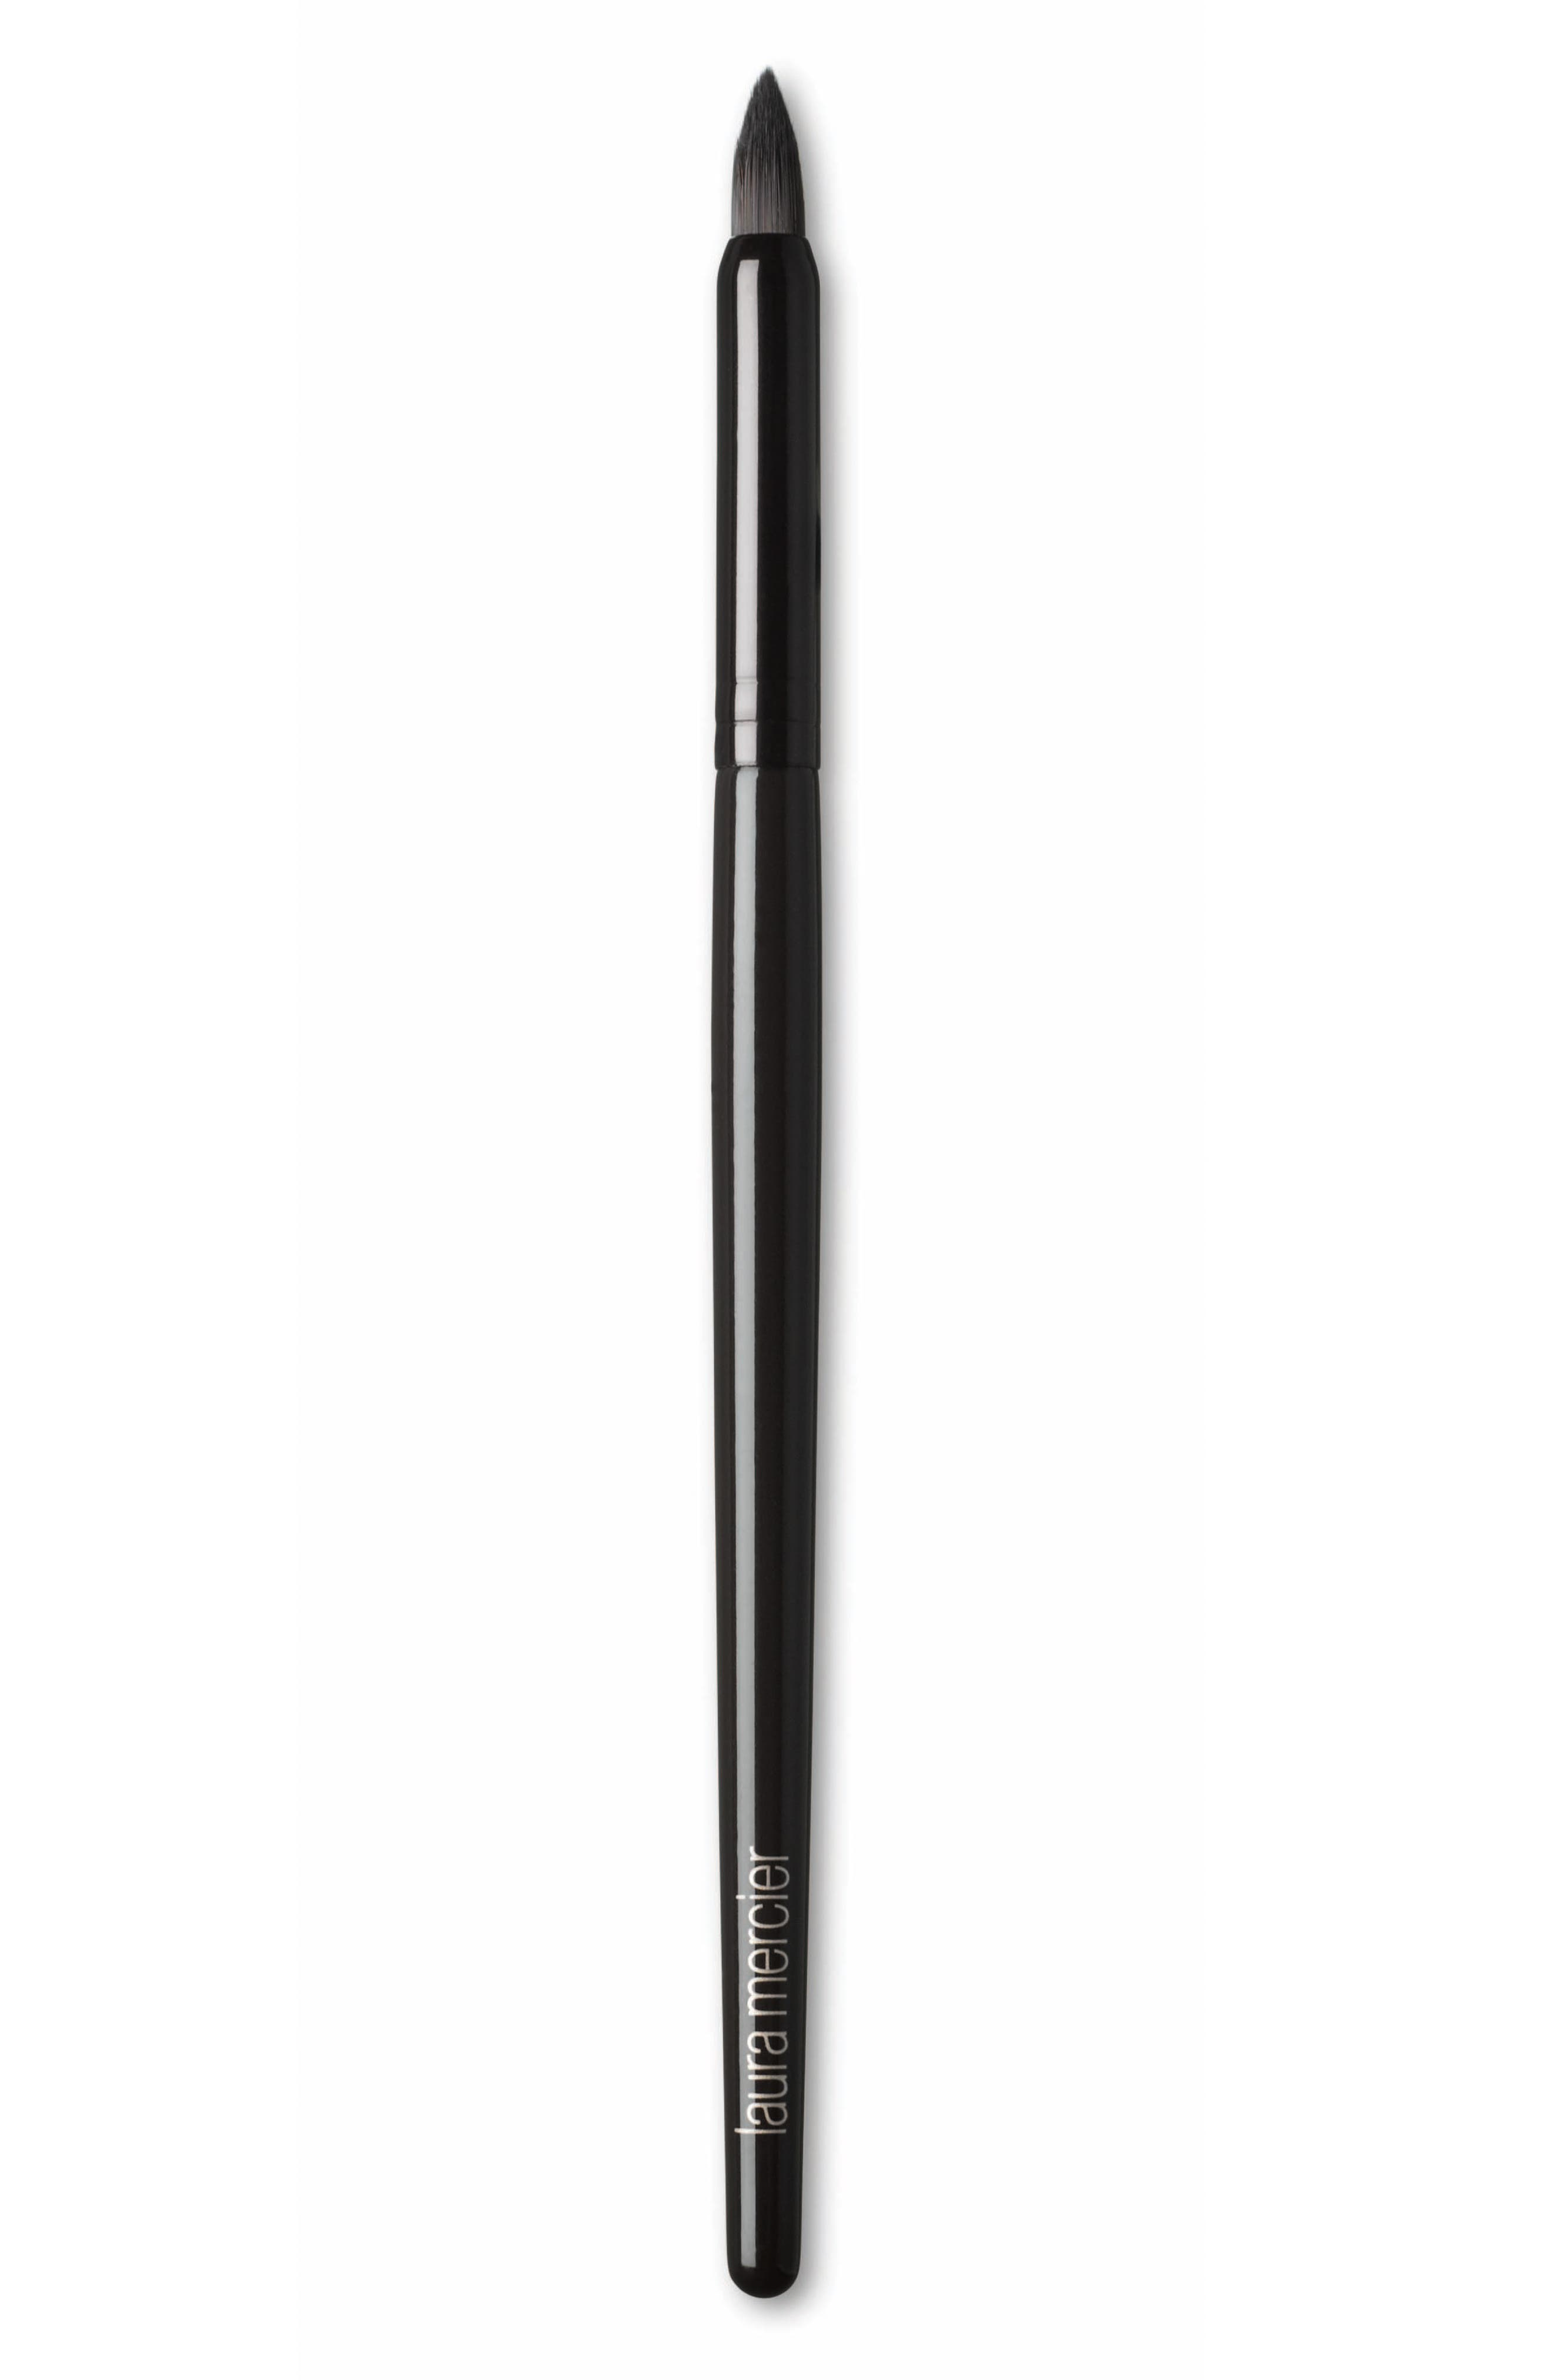 Smoky Eyeliner Brush,                         Main,                         color, No Color